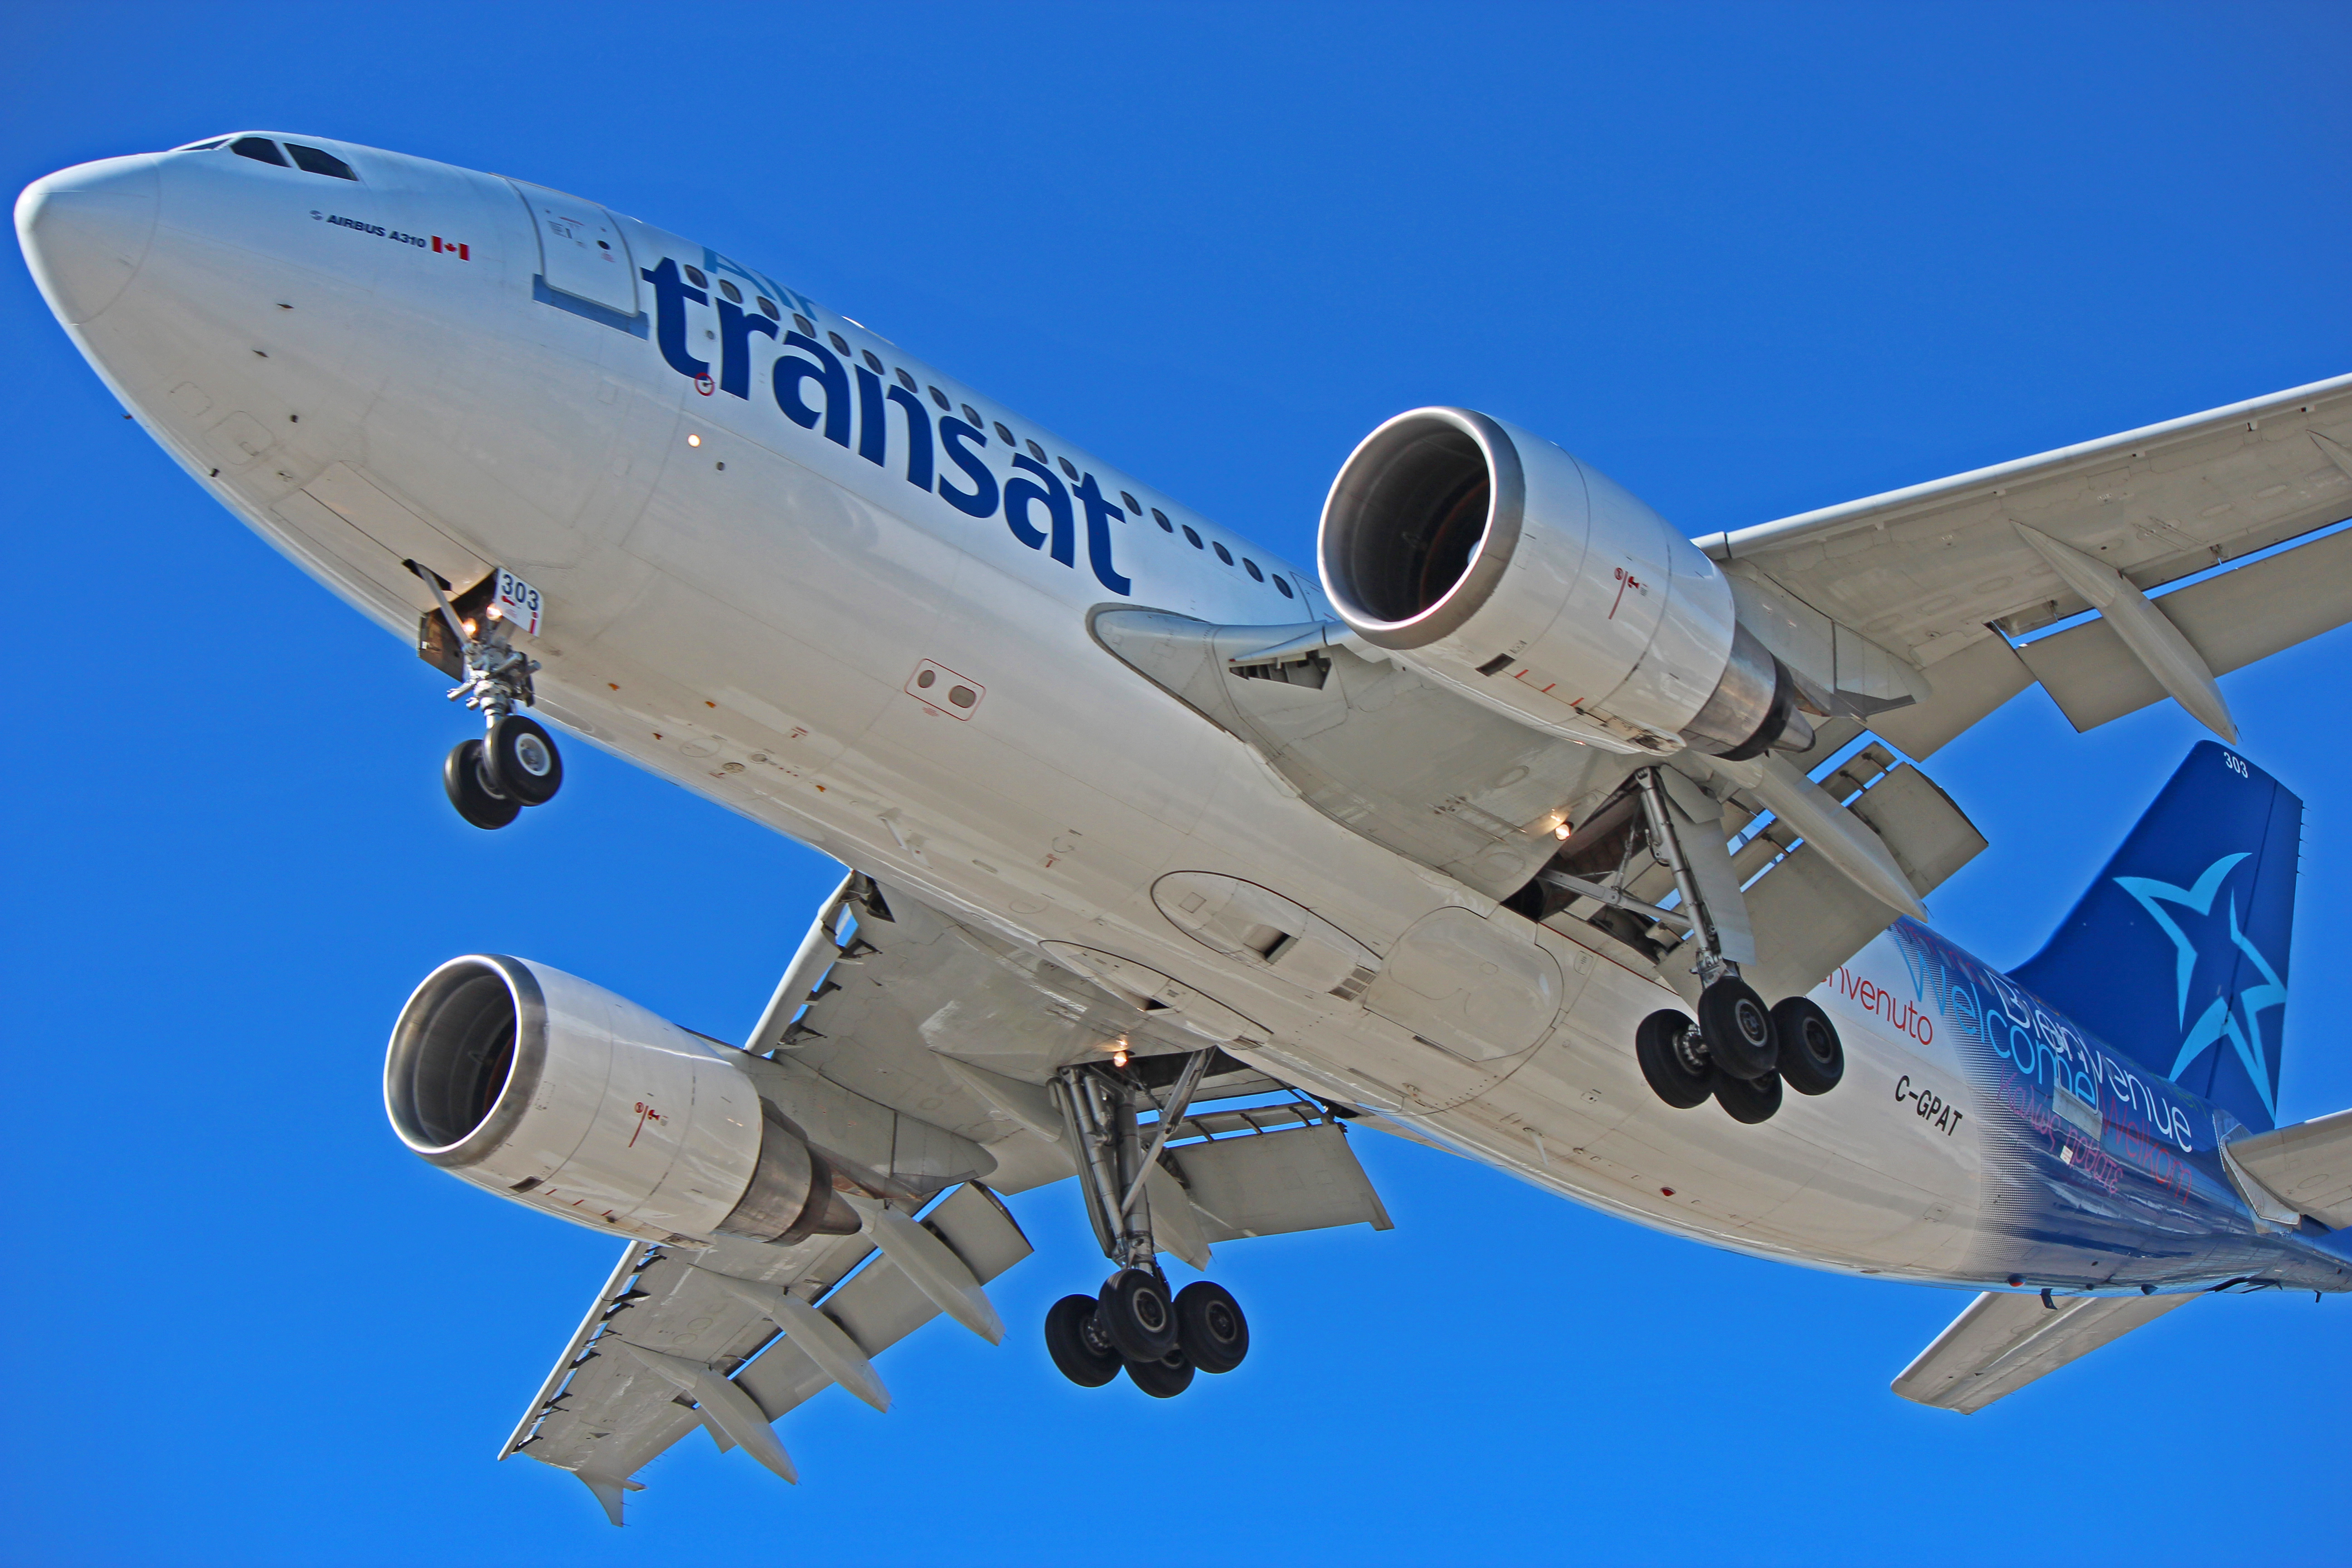 C Gpat Air Transat Airbus A310 The Infamous 2005 Rudder Incident